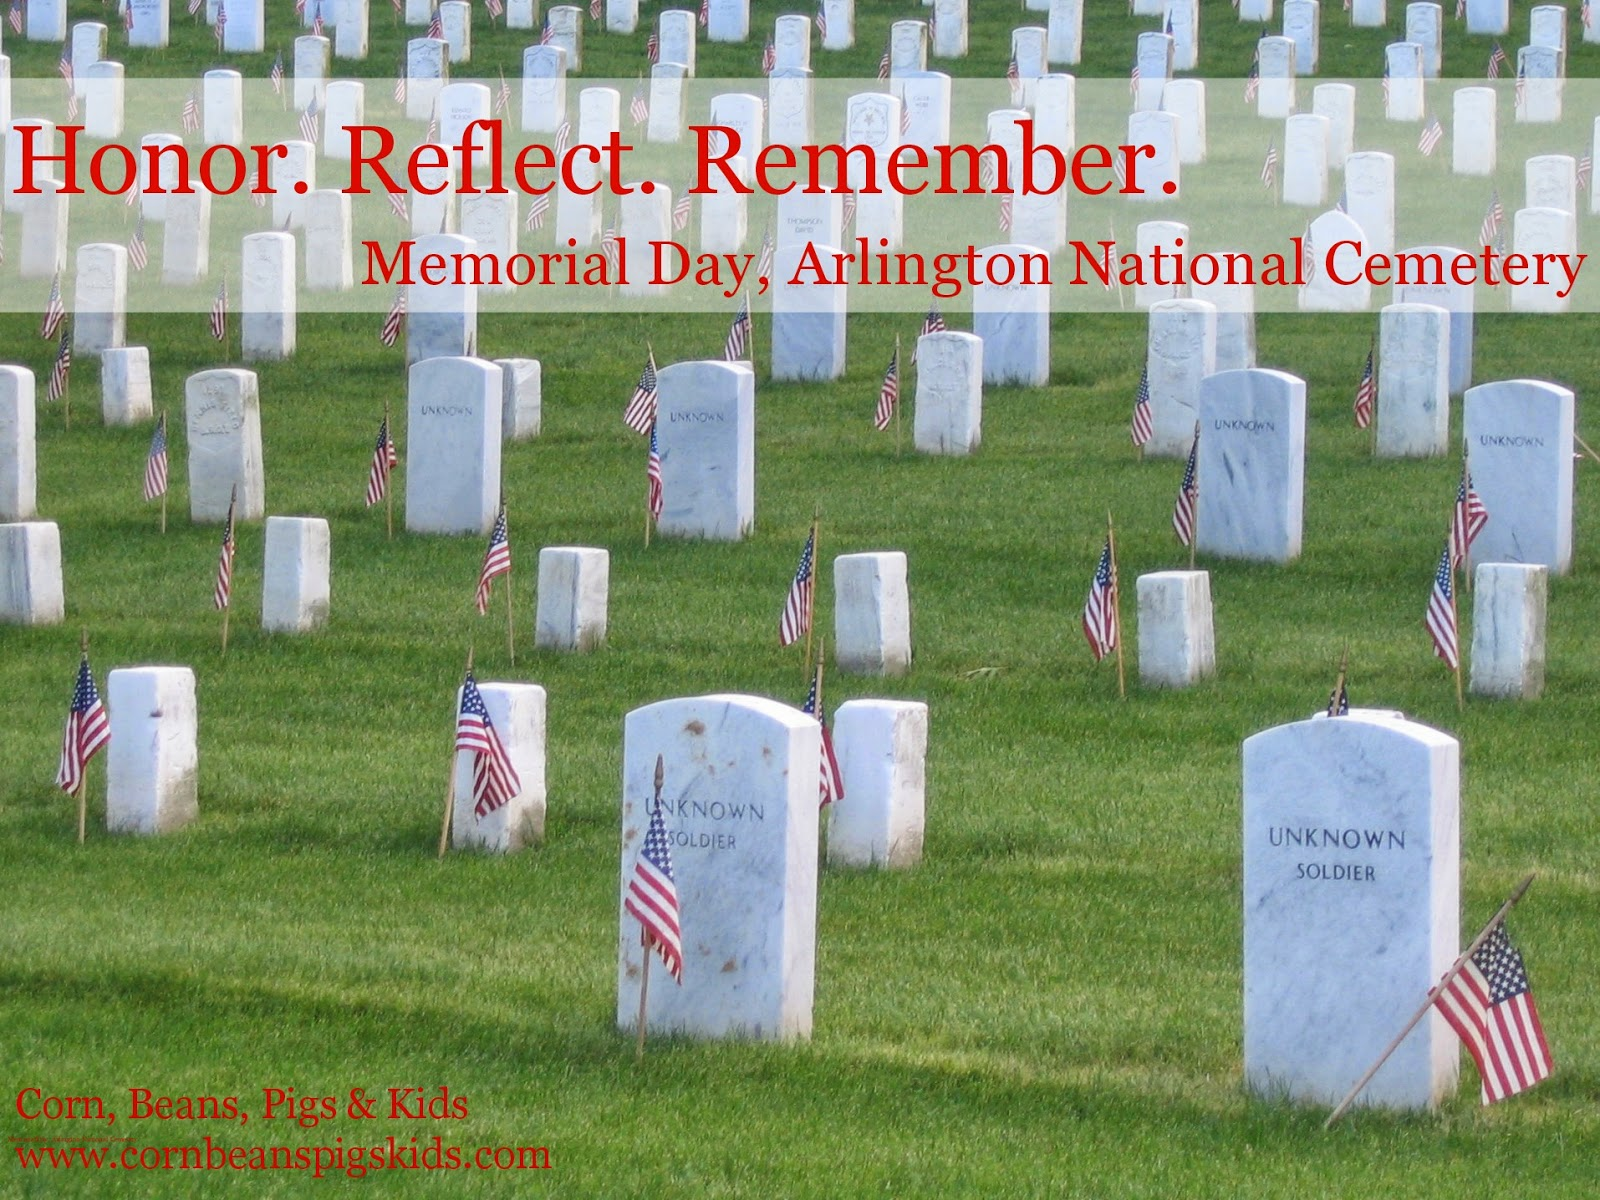 Honor. Reflect. Remember. Memorial Day, Arlington National Cemetery